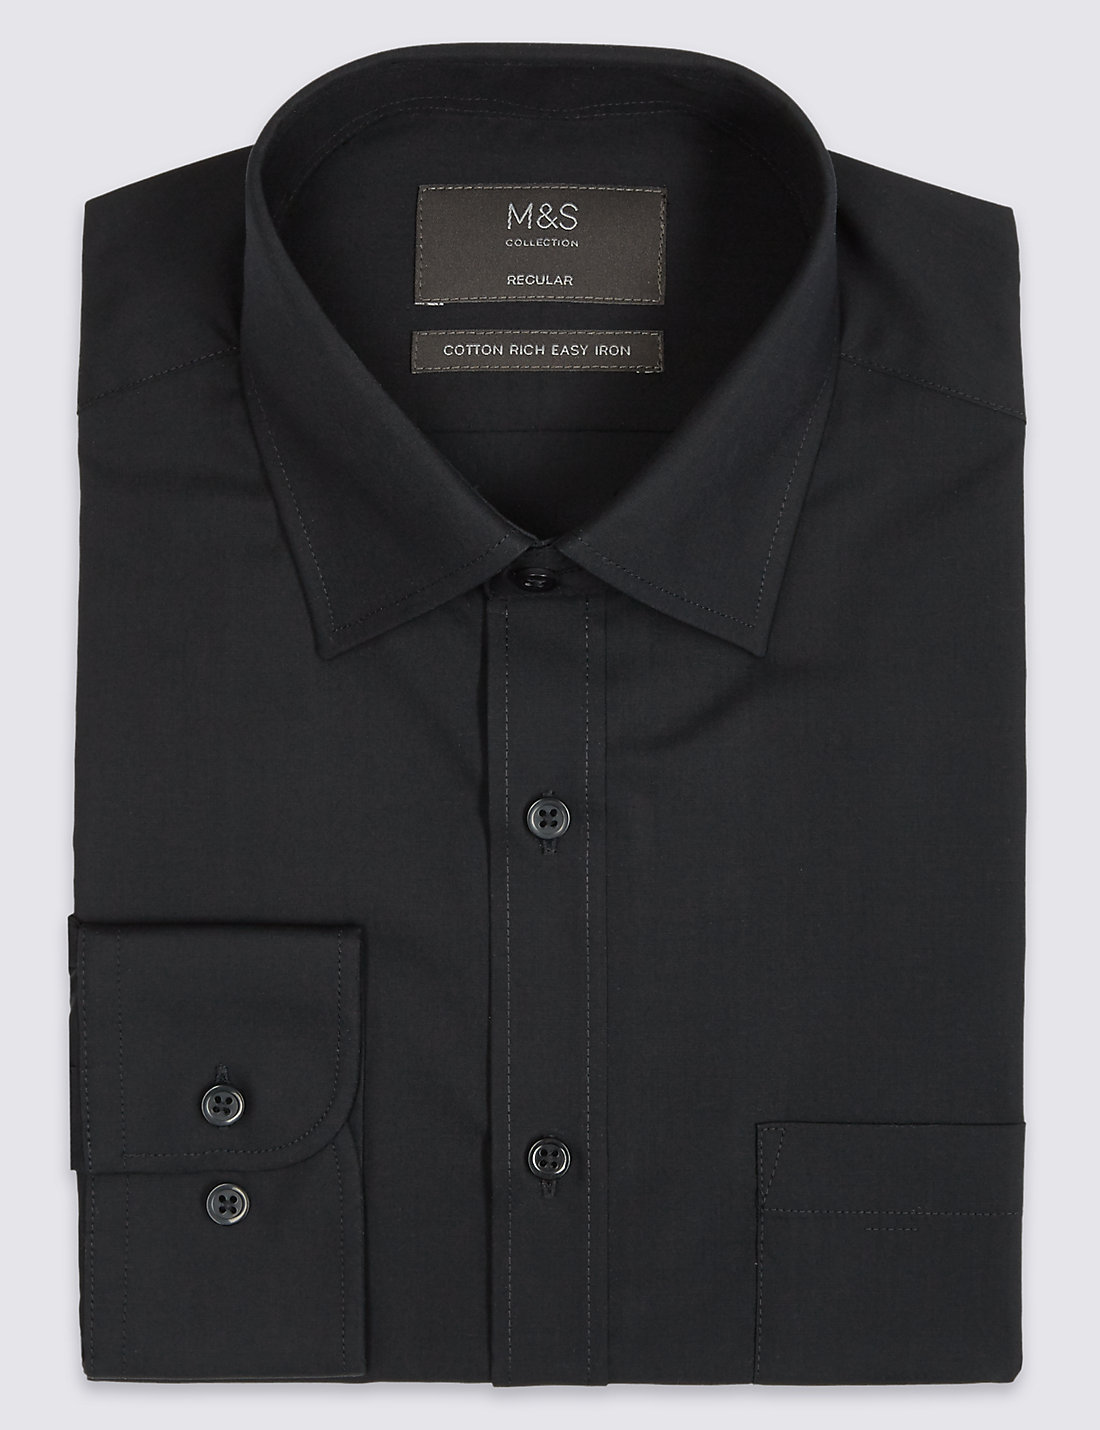 Cotton Rich Easy to Iron Regular Fit Shirt | M&S